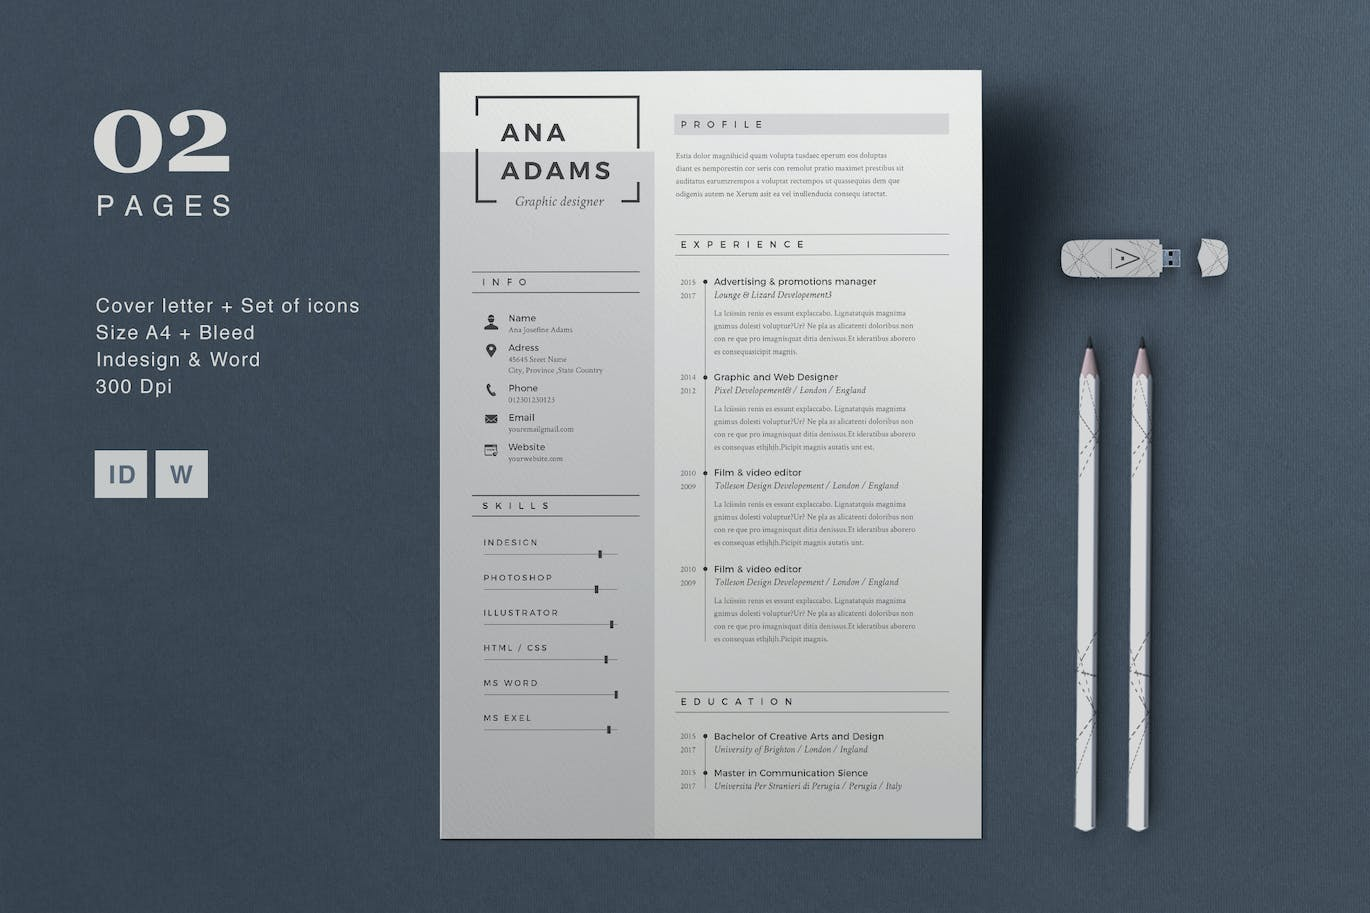 resume anna with envato elements subscription - Creative Resume Design Templates